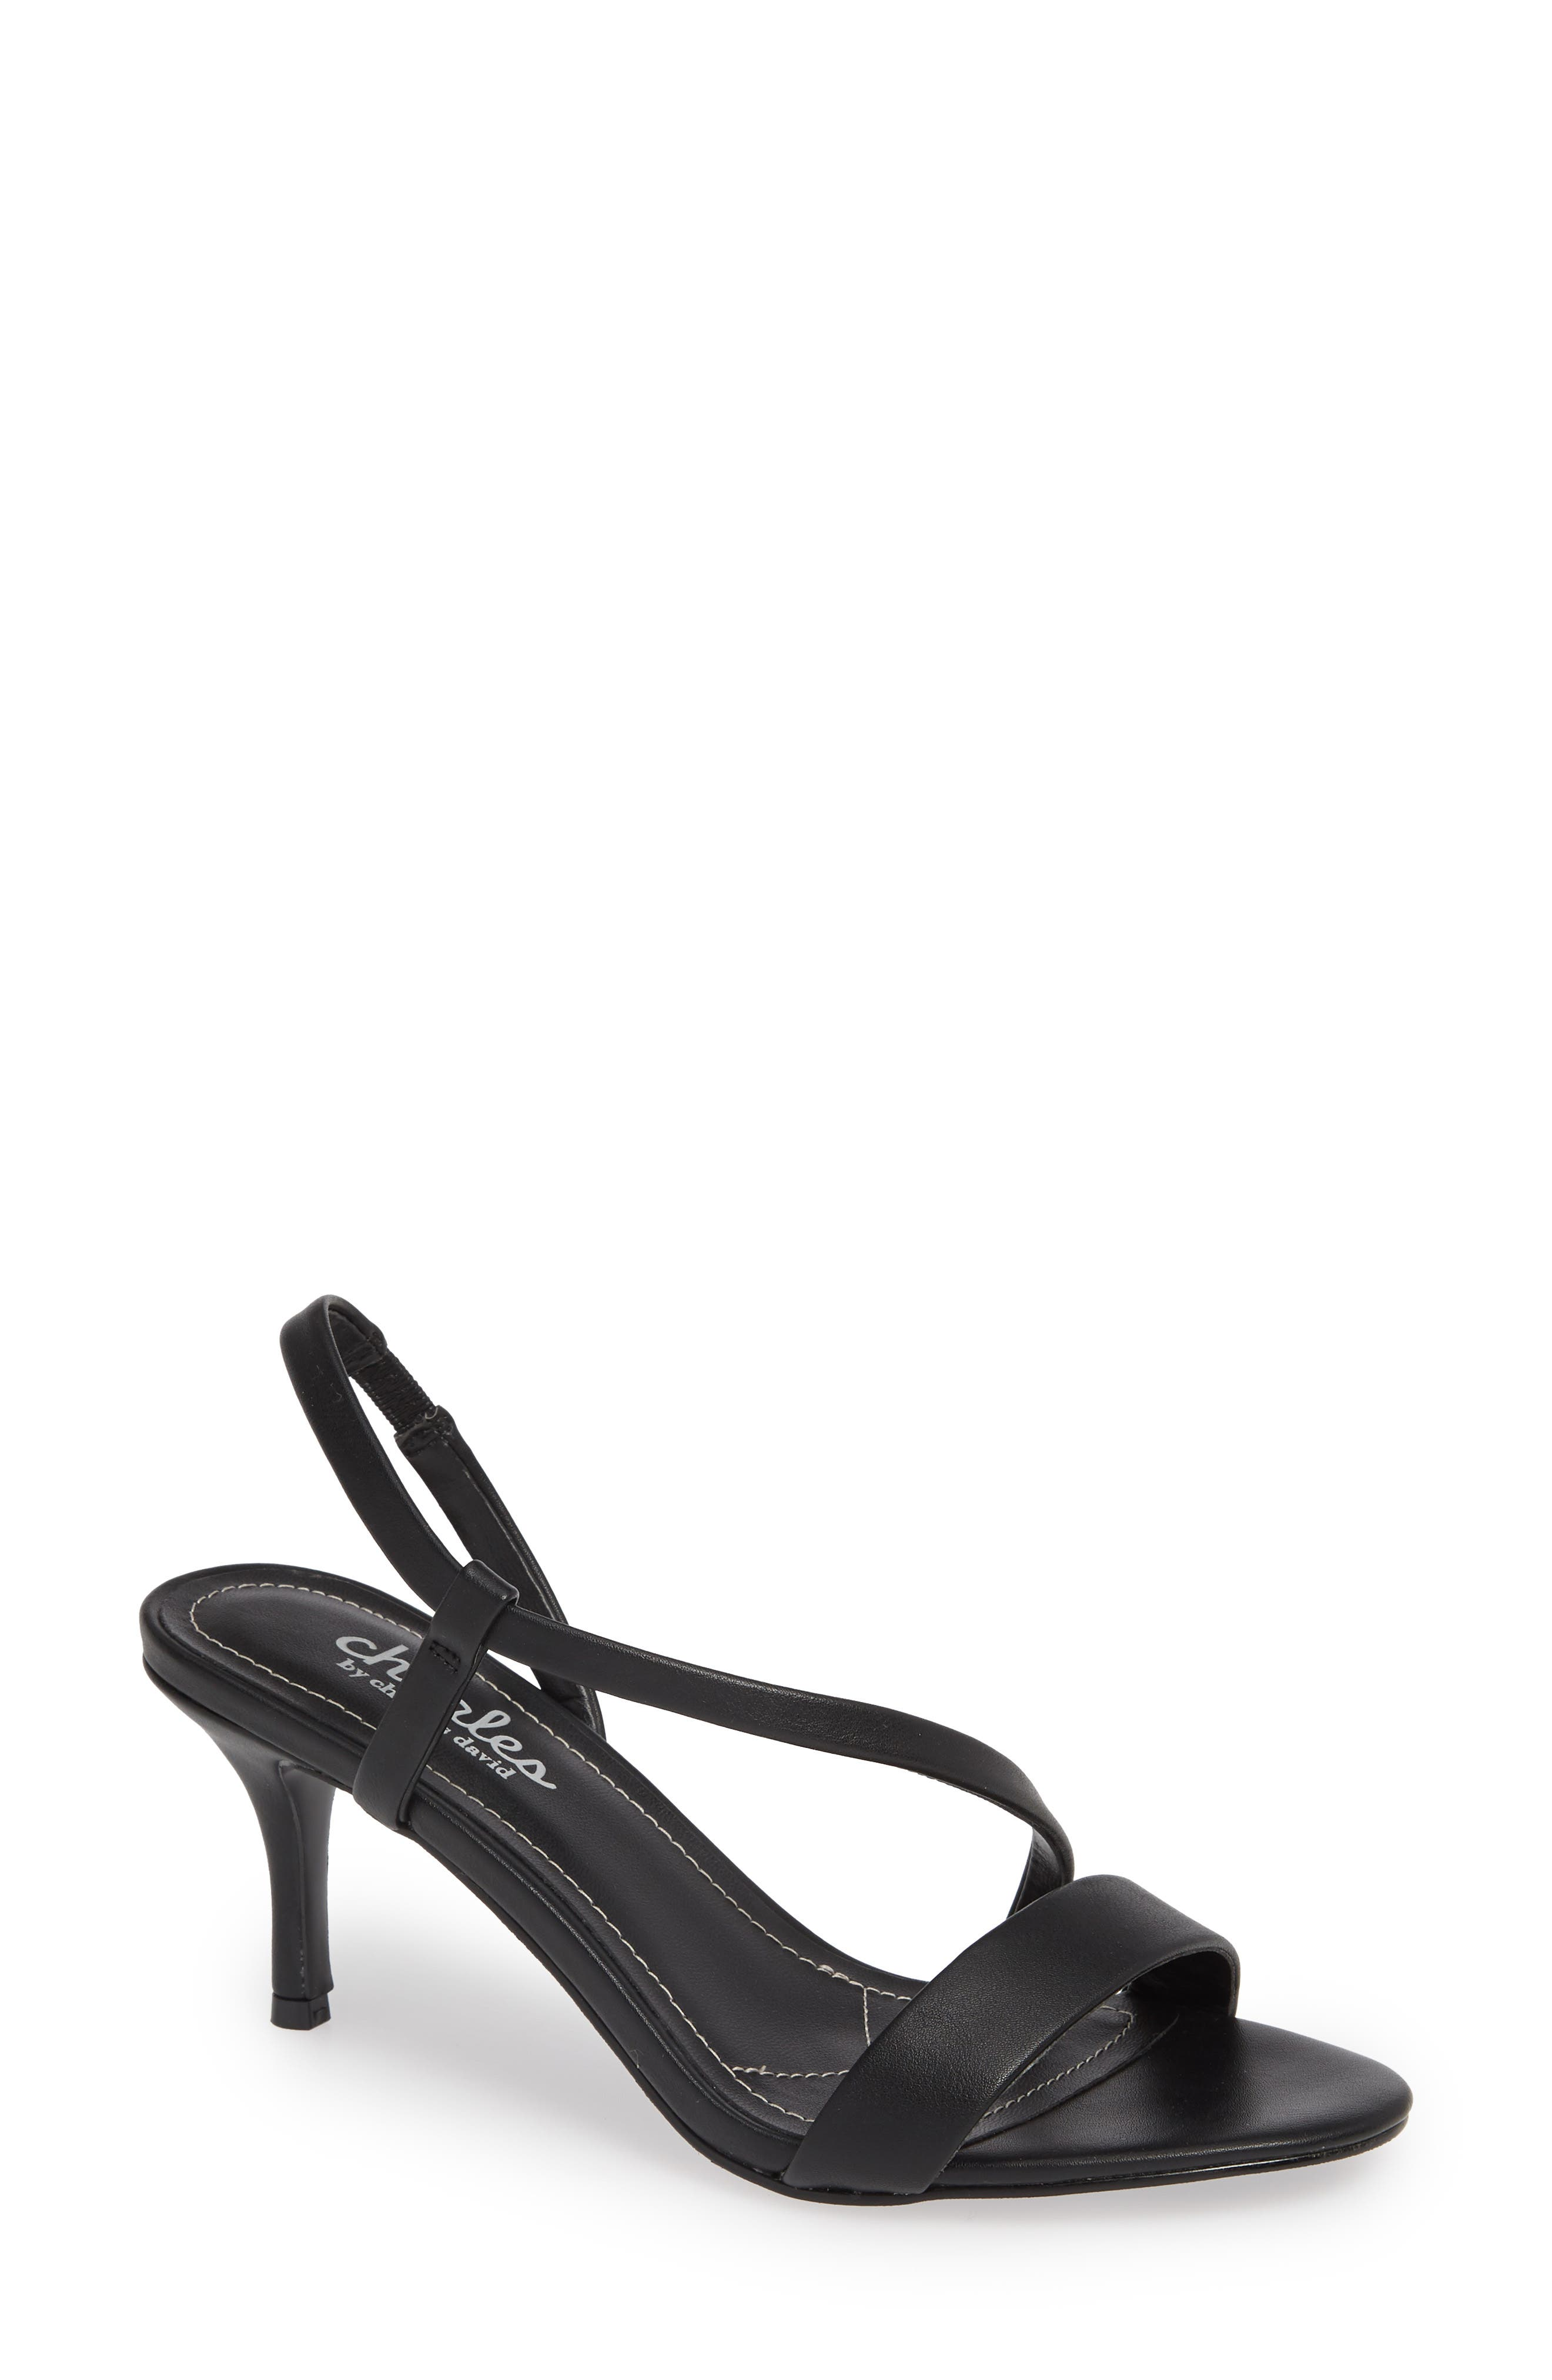 CHARLES BY CHARLES DAVID, Bermuda Asymmetrical Sandal, Main thumbnail 1, color, BLACK FAUX LEATHER